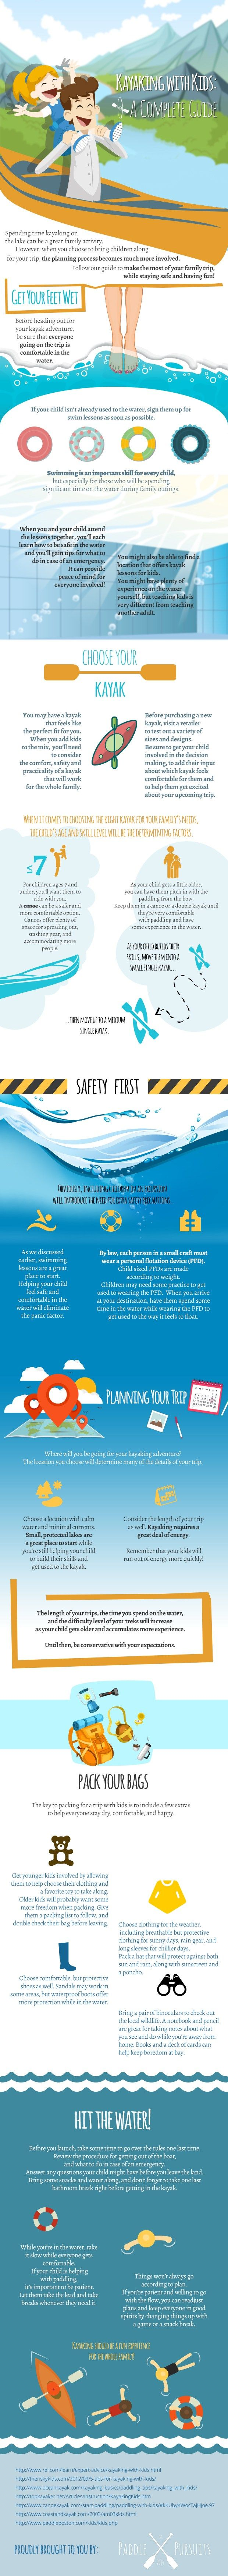 Infographic Of The Day: Kayaking With Kids